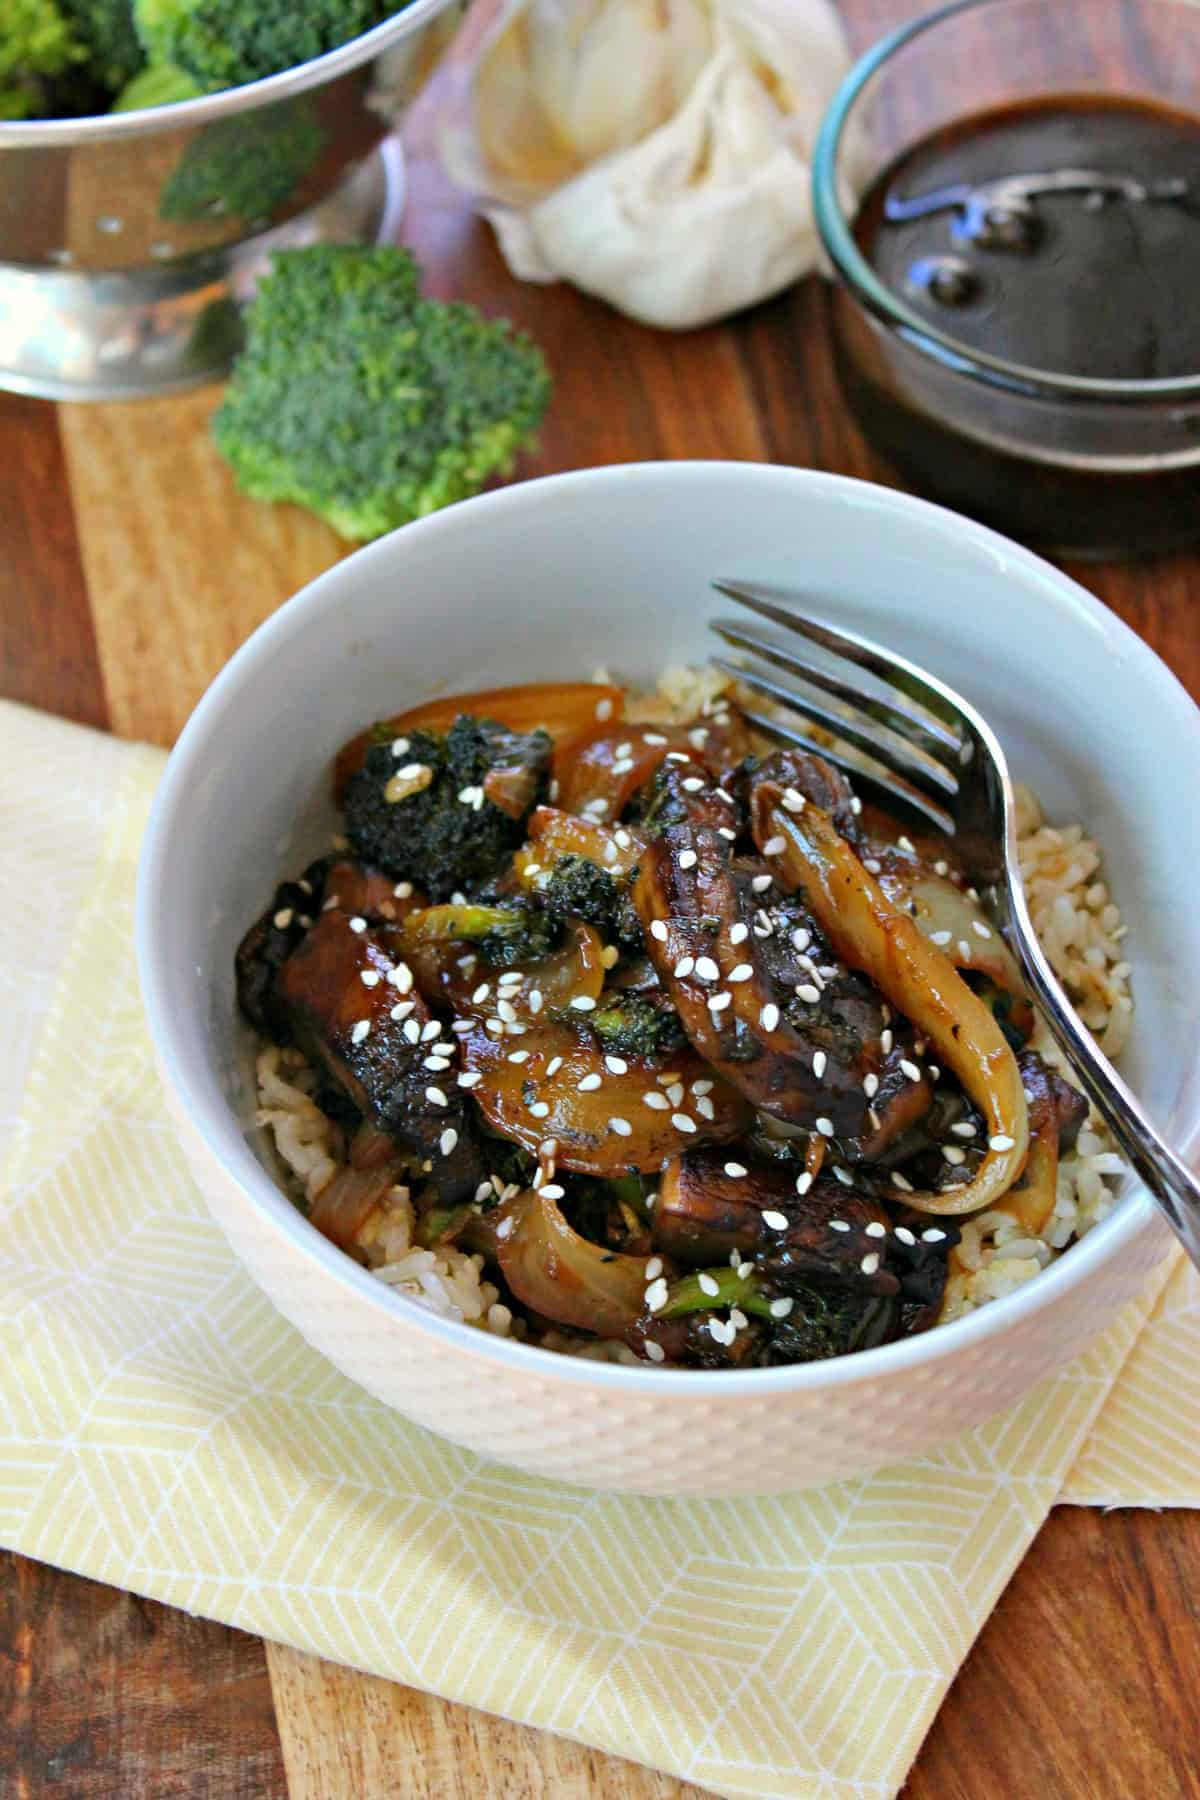 Sweet homemade teriyaki sauce coats tender mushrooms and rice with vegetables.